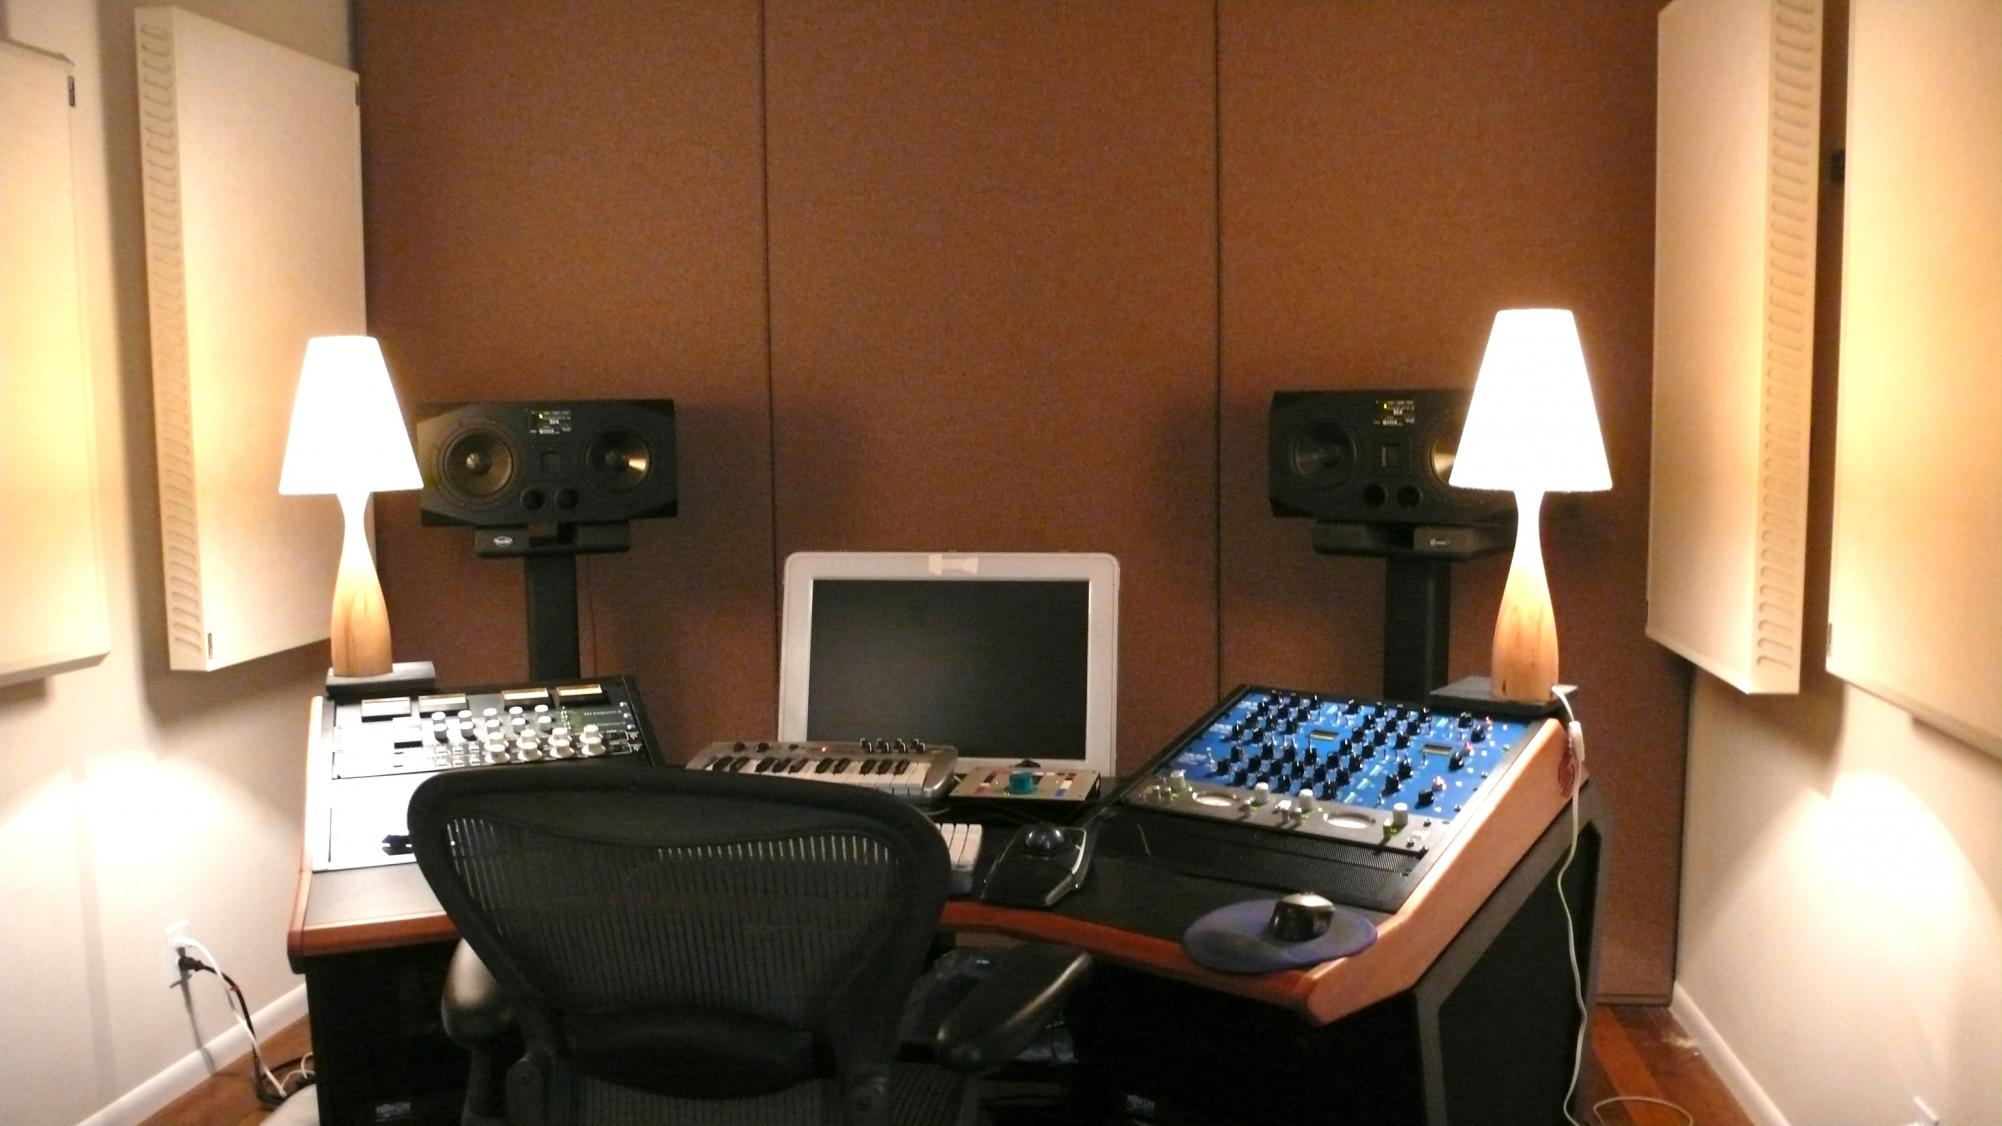 forum do it yourself diy diy dj console tisch. Black Bedroom Furniture Sets. Home Design Ideas